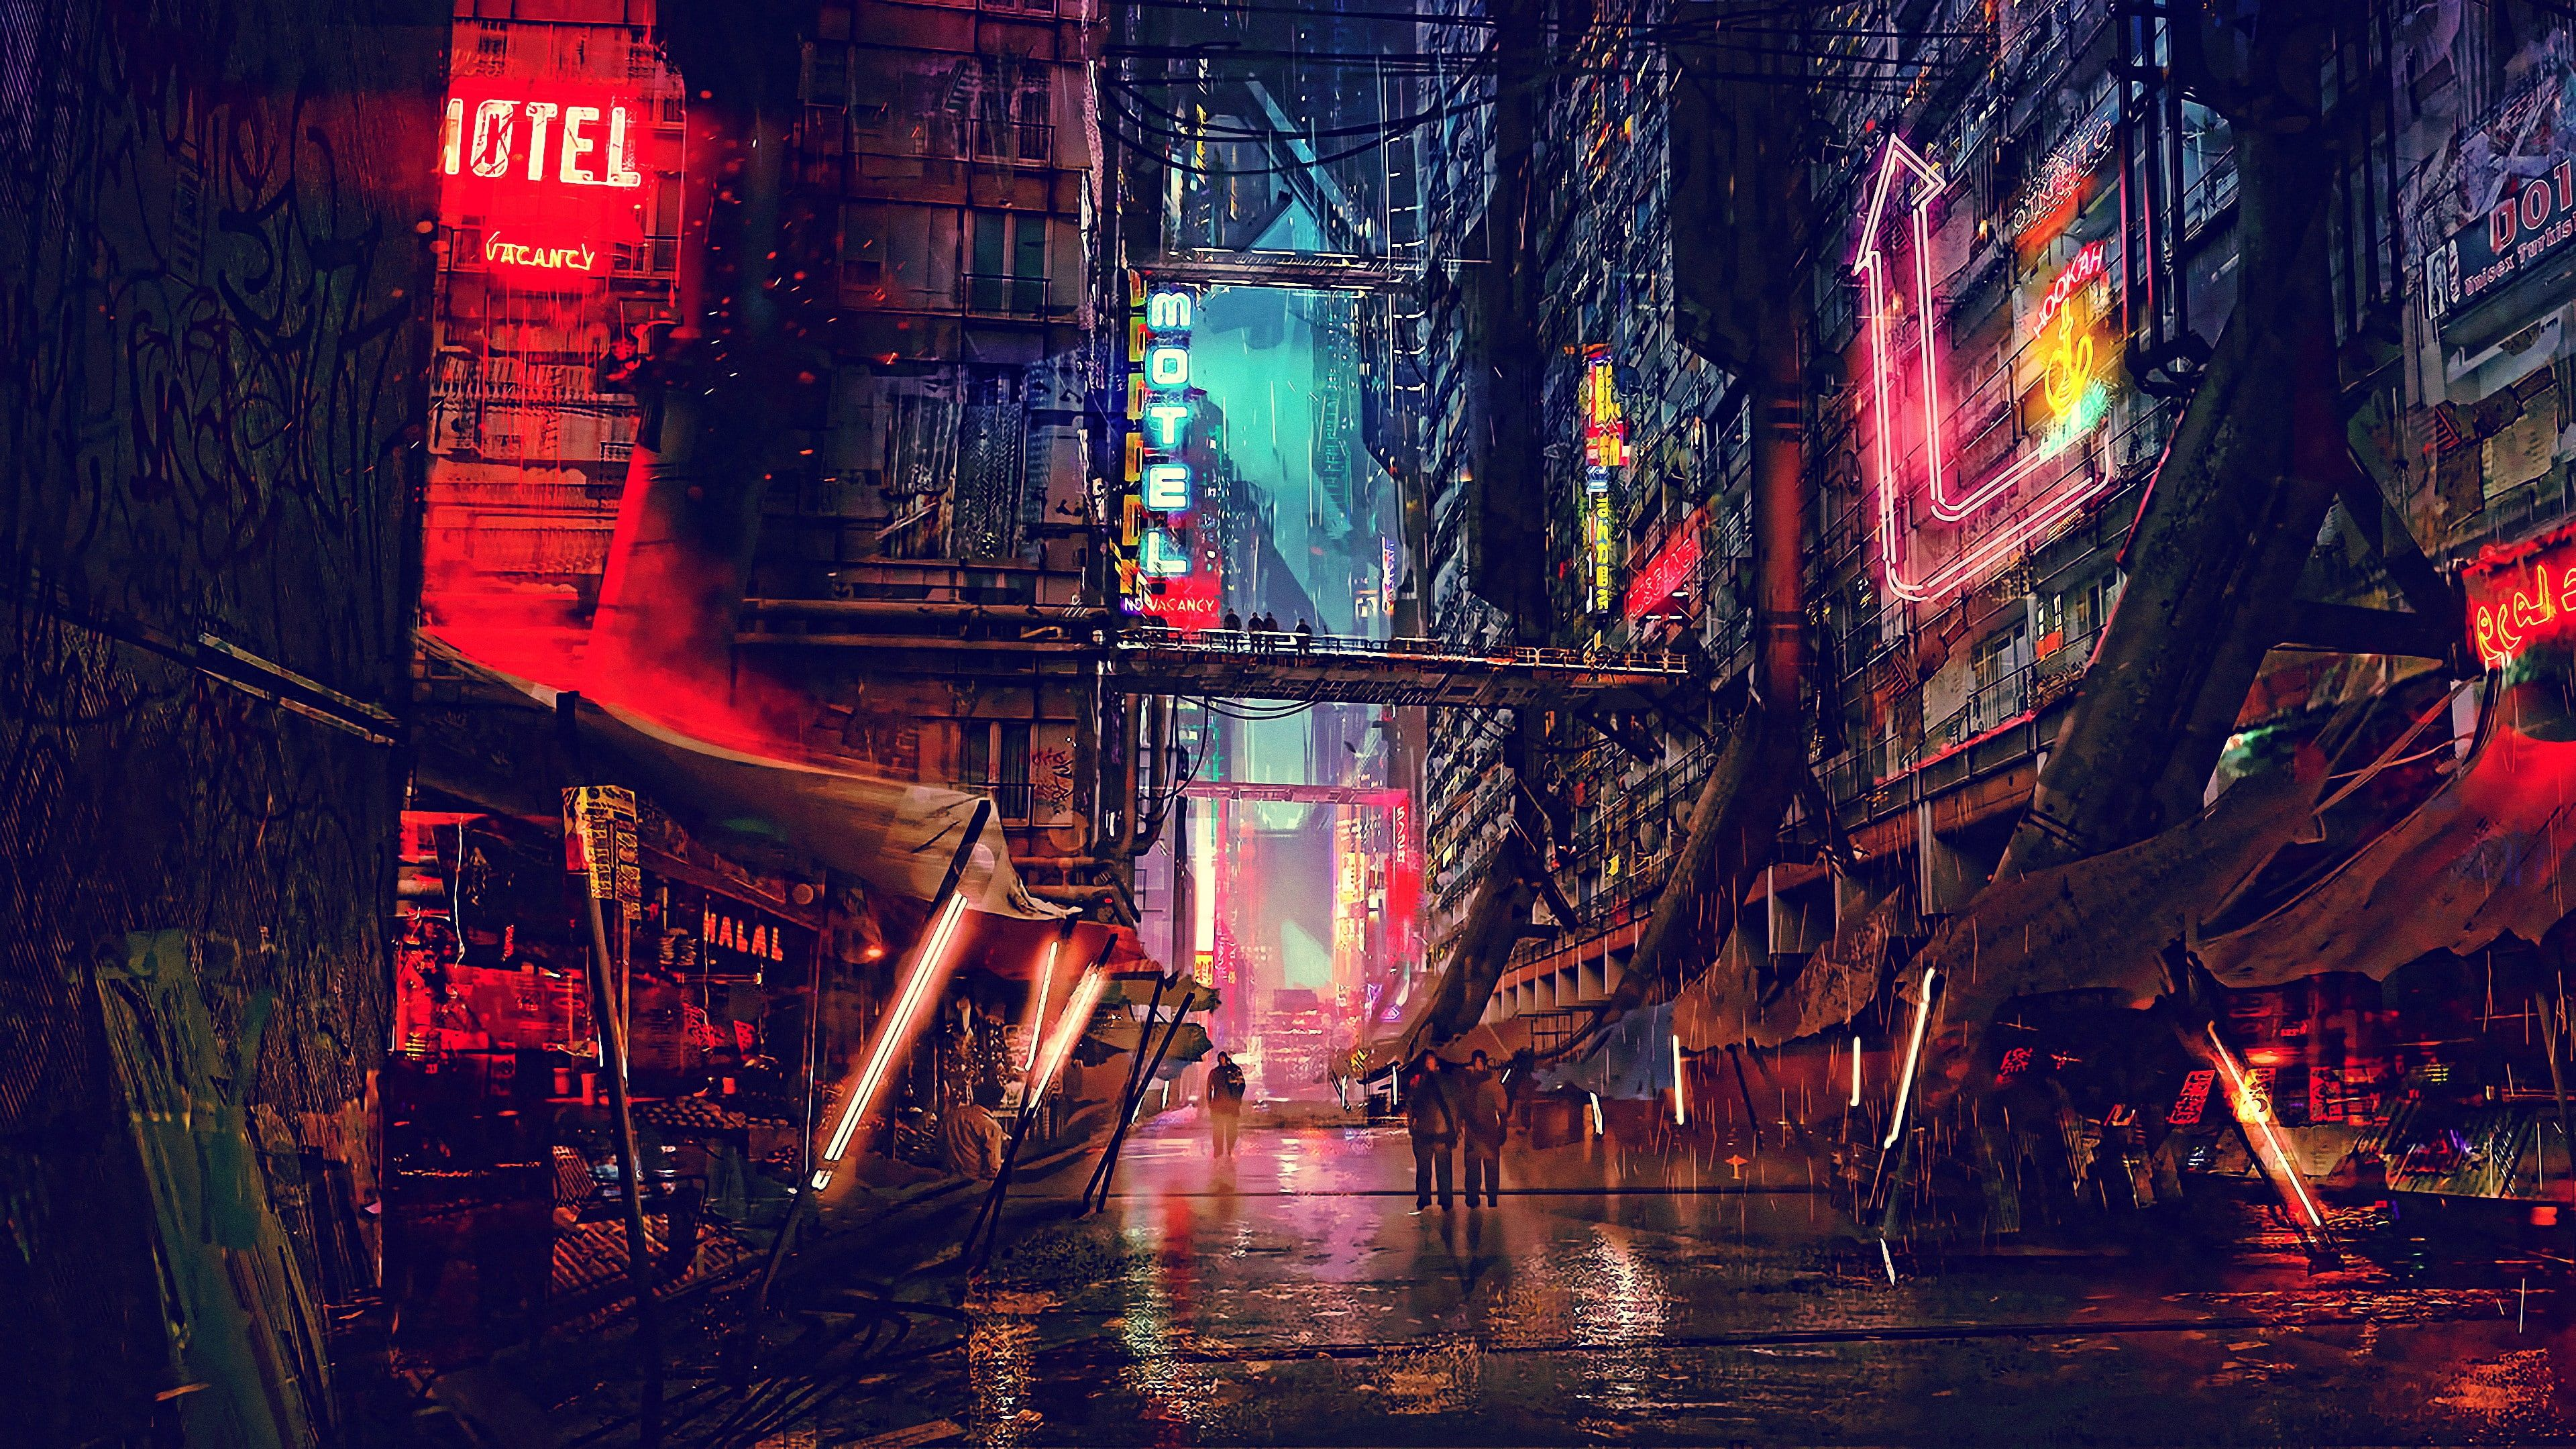 View Retro 4K Cyberpunk Wallpaper Images